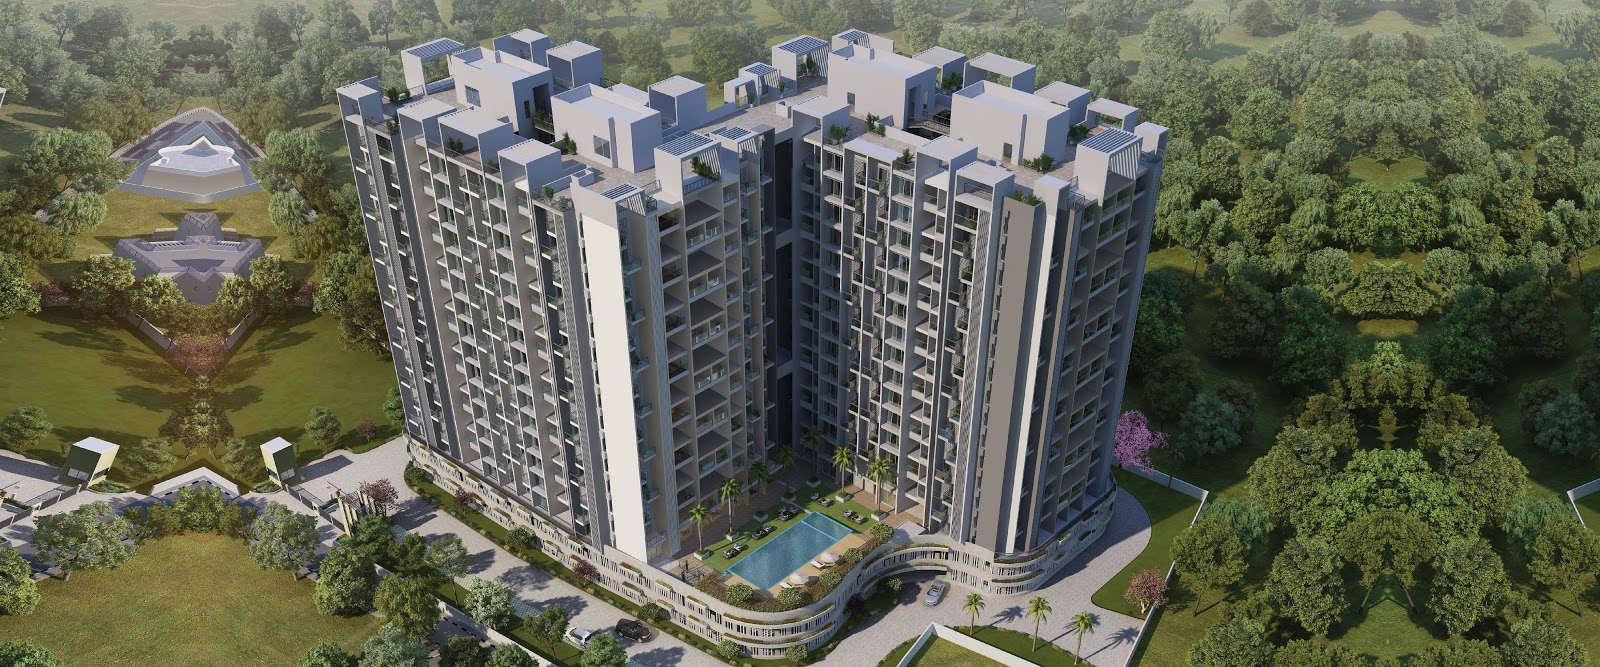 7 Factors to Consider When Buying an Apartment in Pune